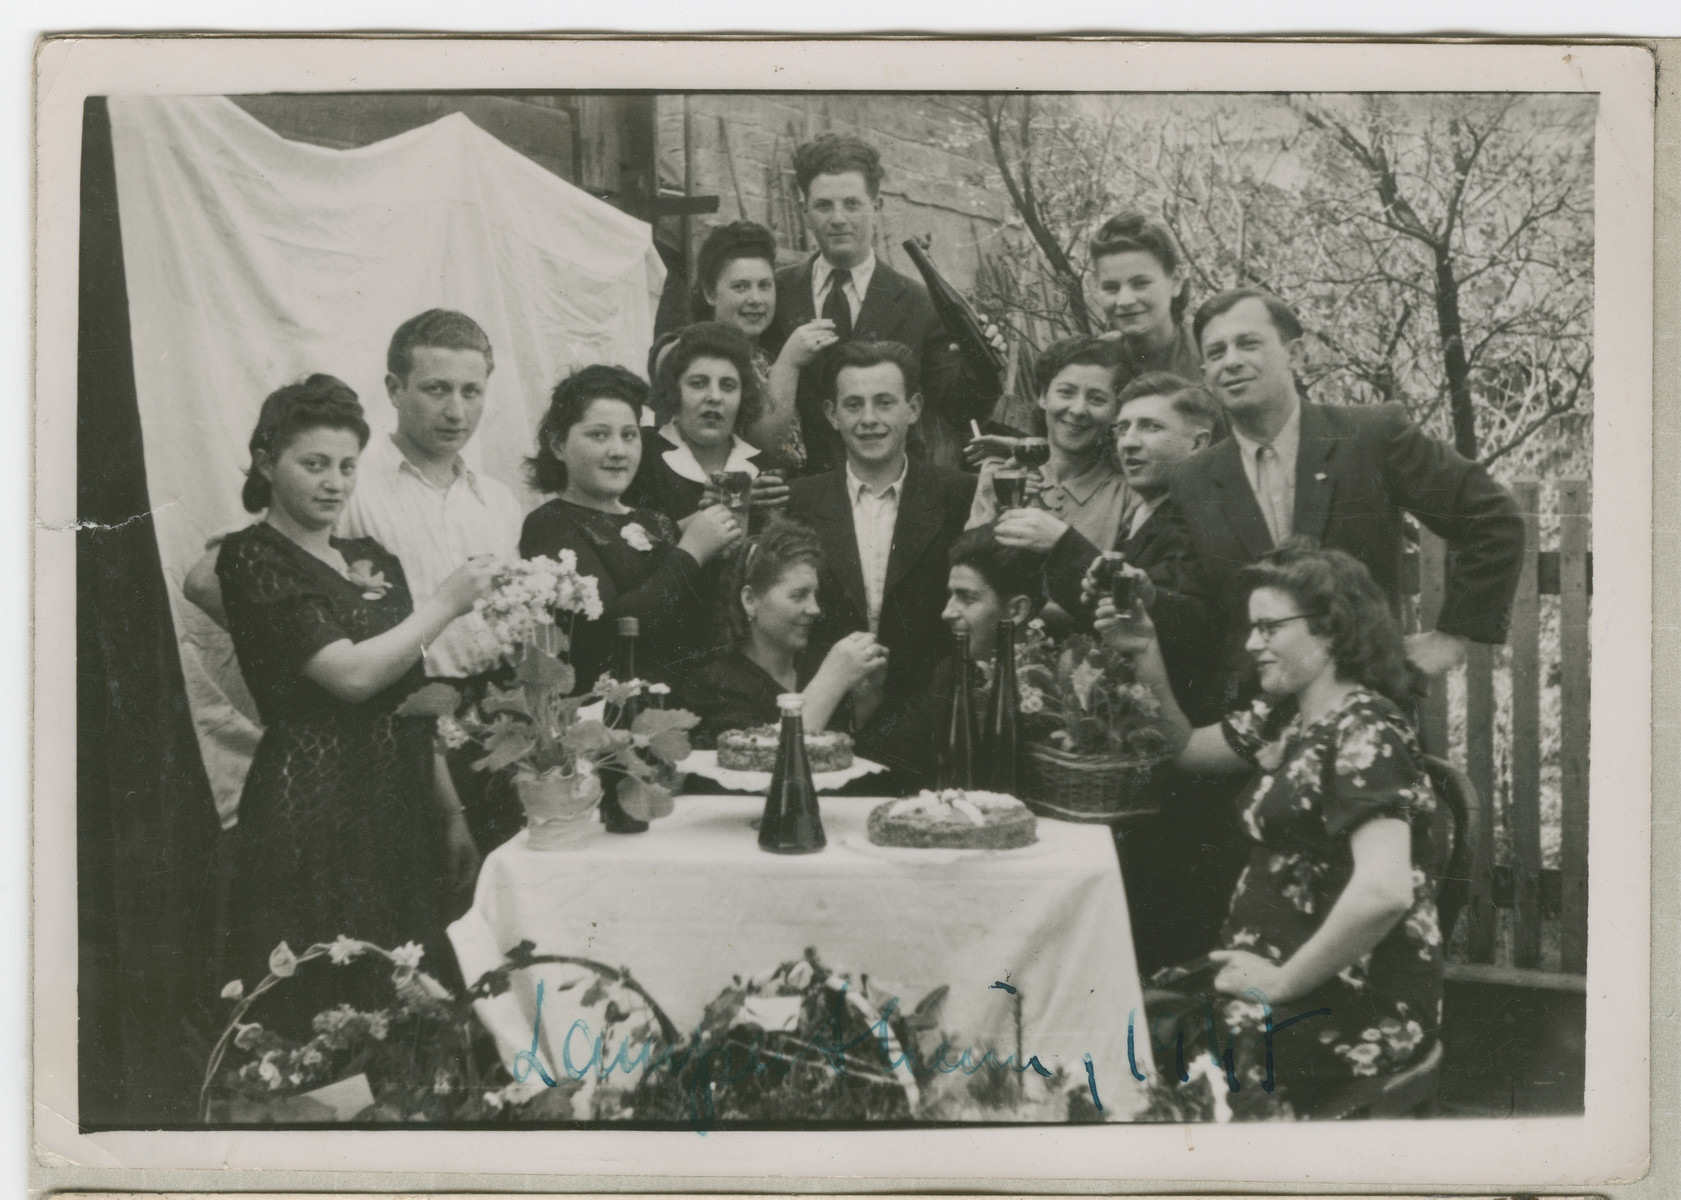 A large group of men and women raises glasses in a celebration in the Lampertheim displaced persons camp.  Pictured on the left are Regina and David Kadzidlo.